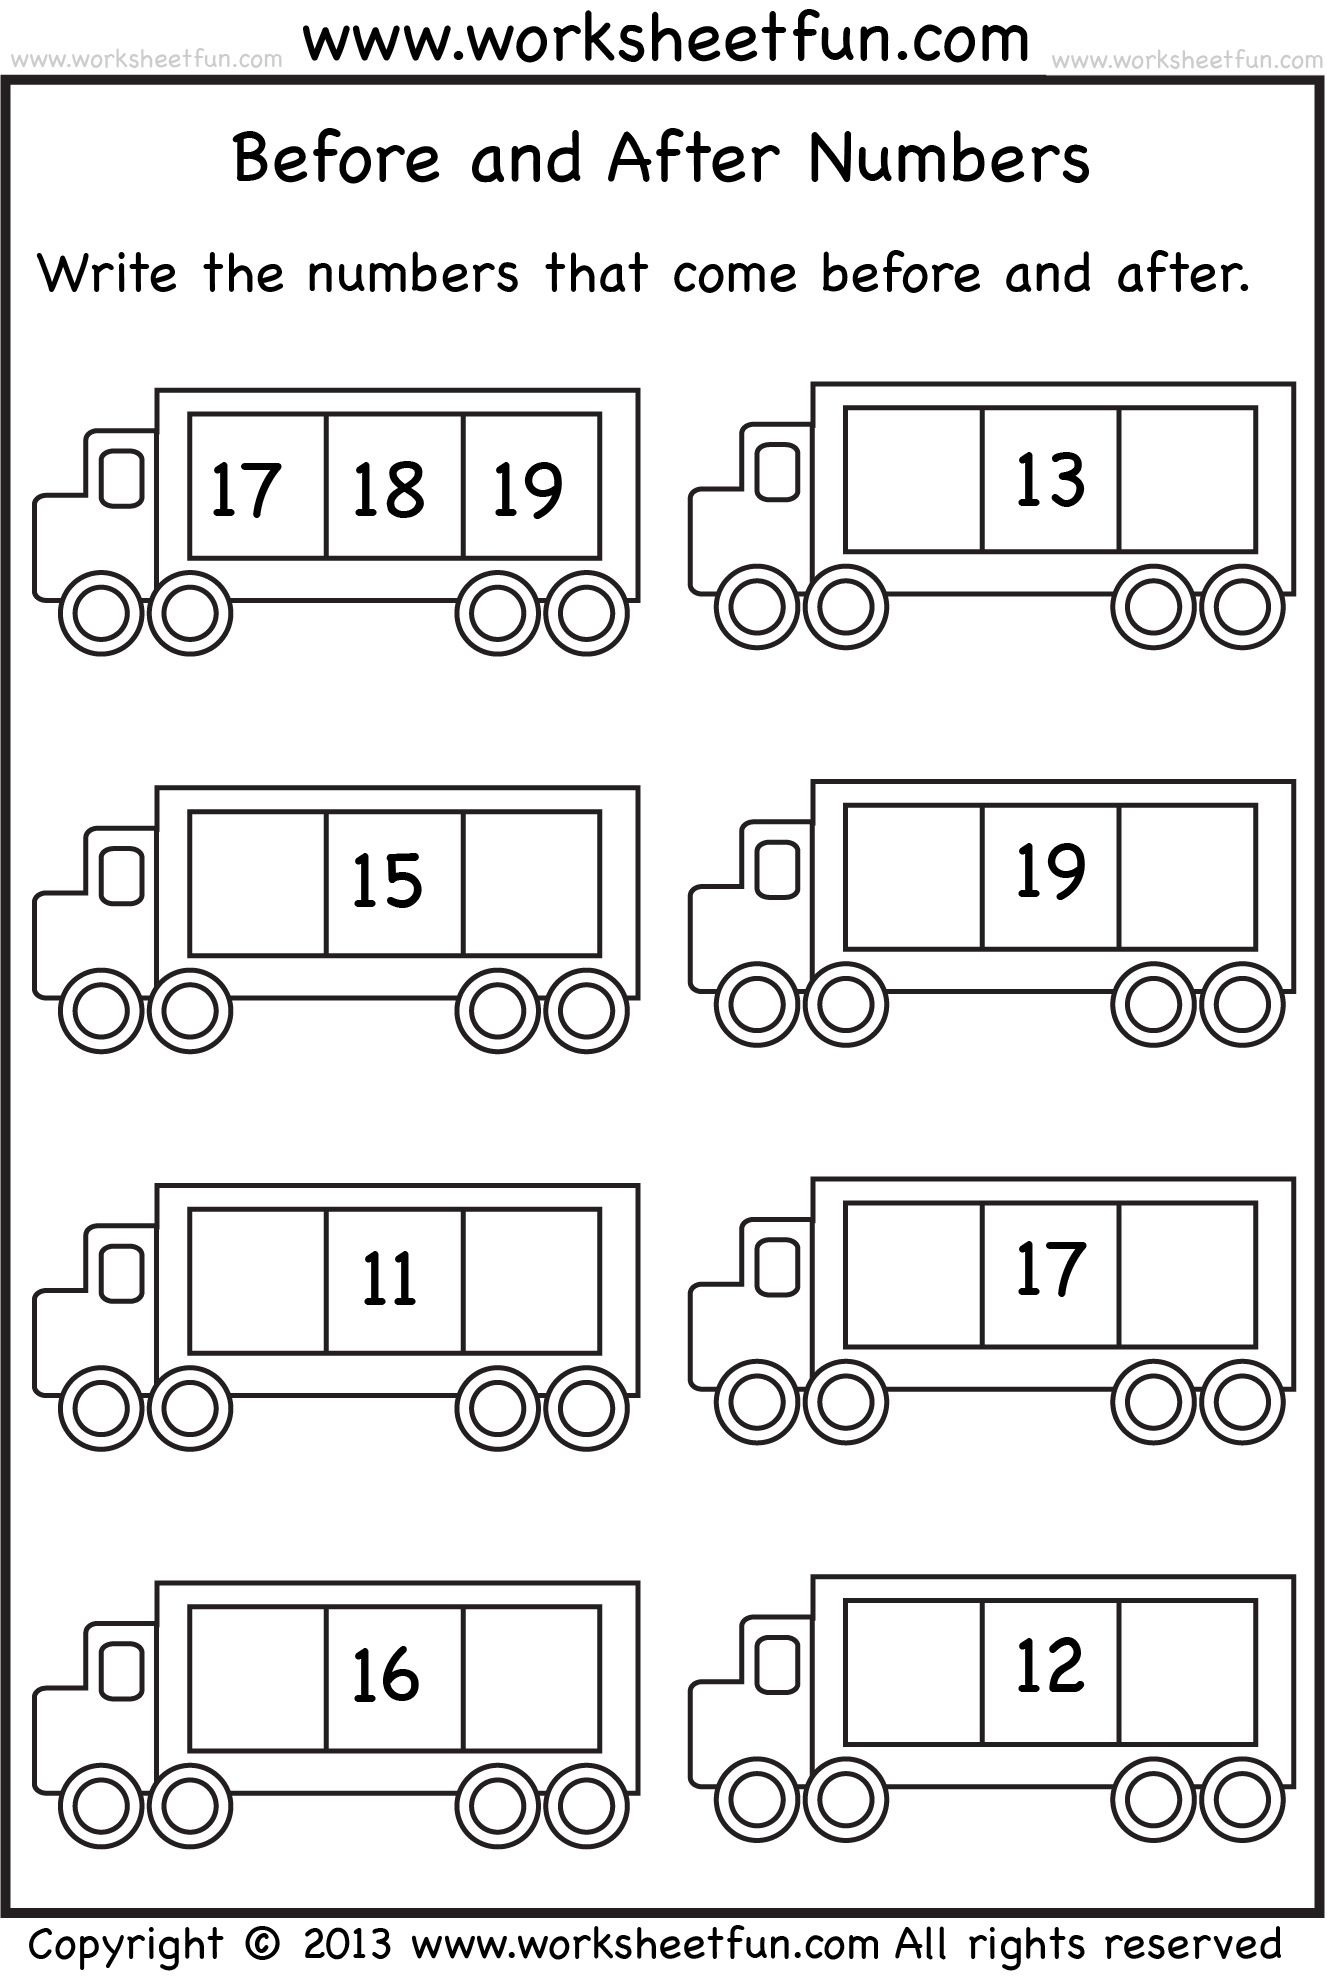 Order of numbers | Mathe | Pinterest | Maths, Worksheets and School